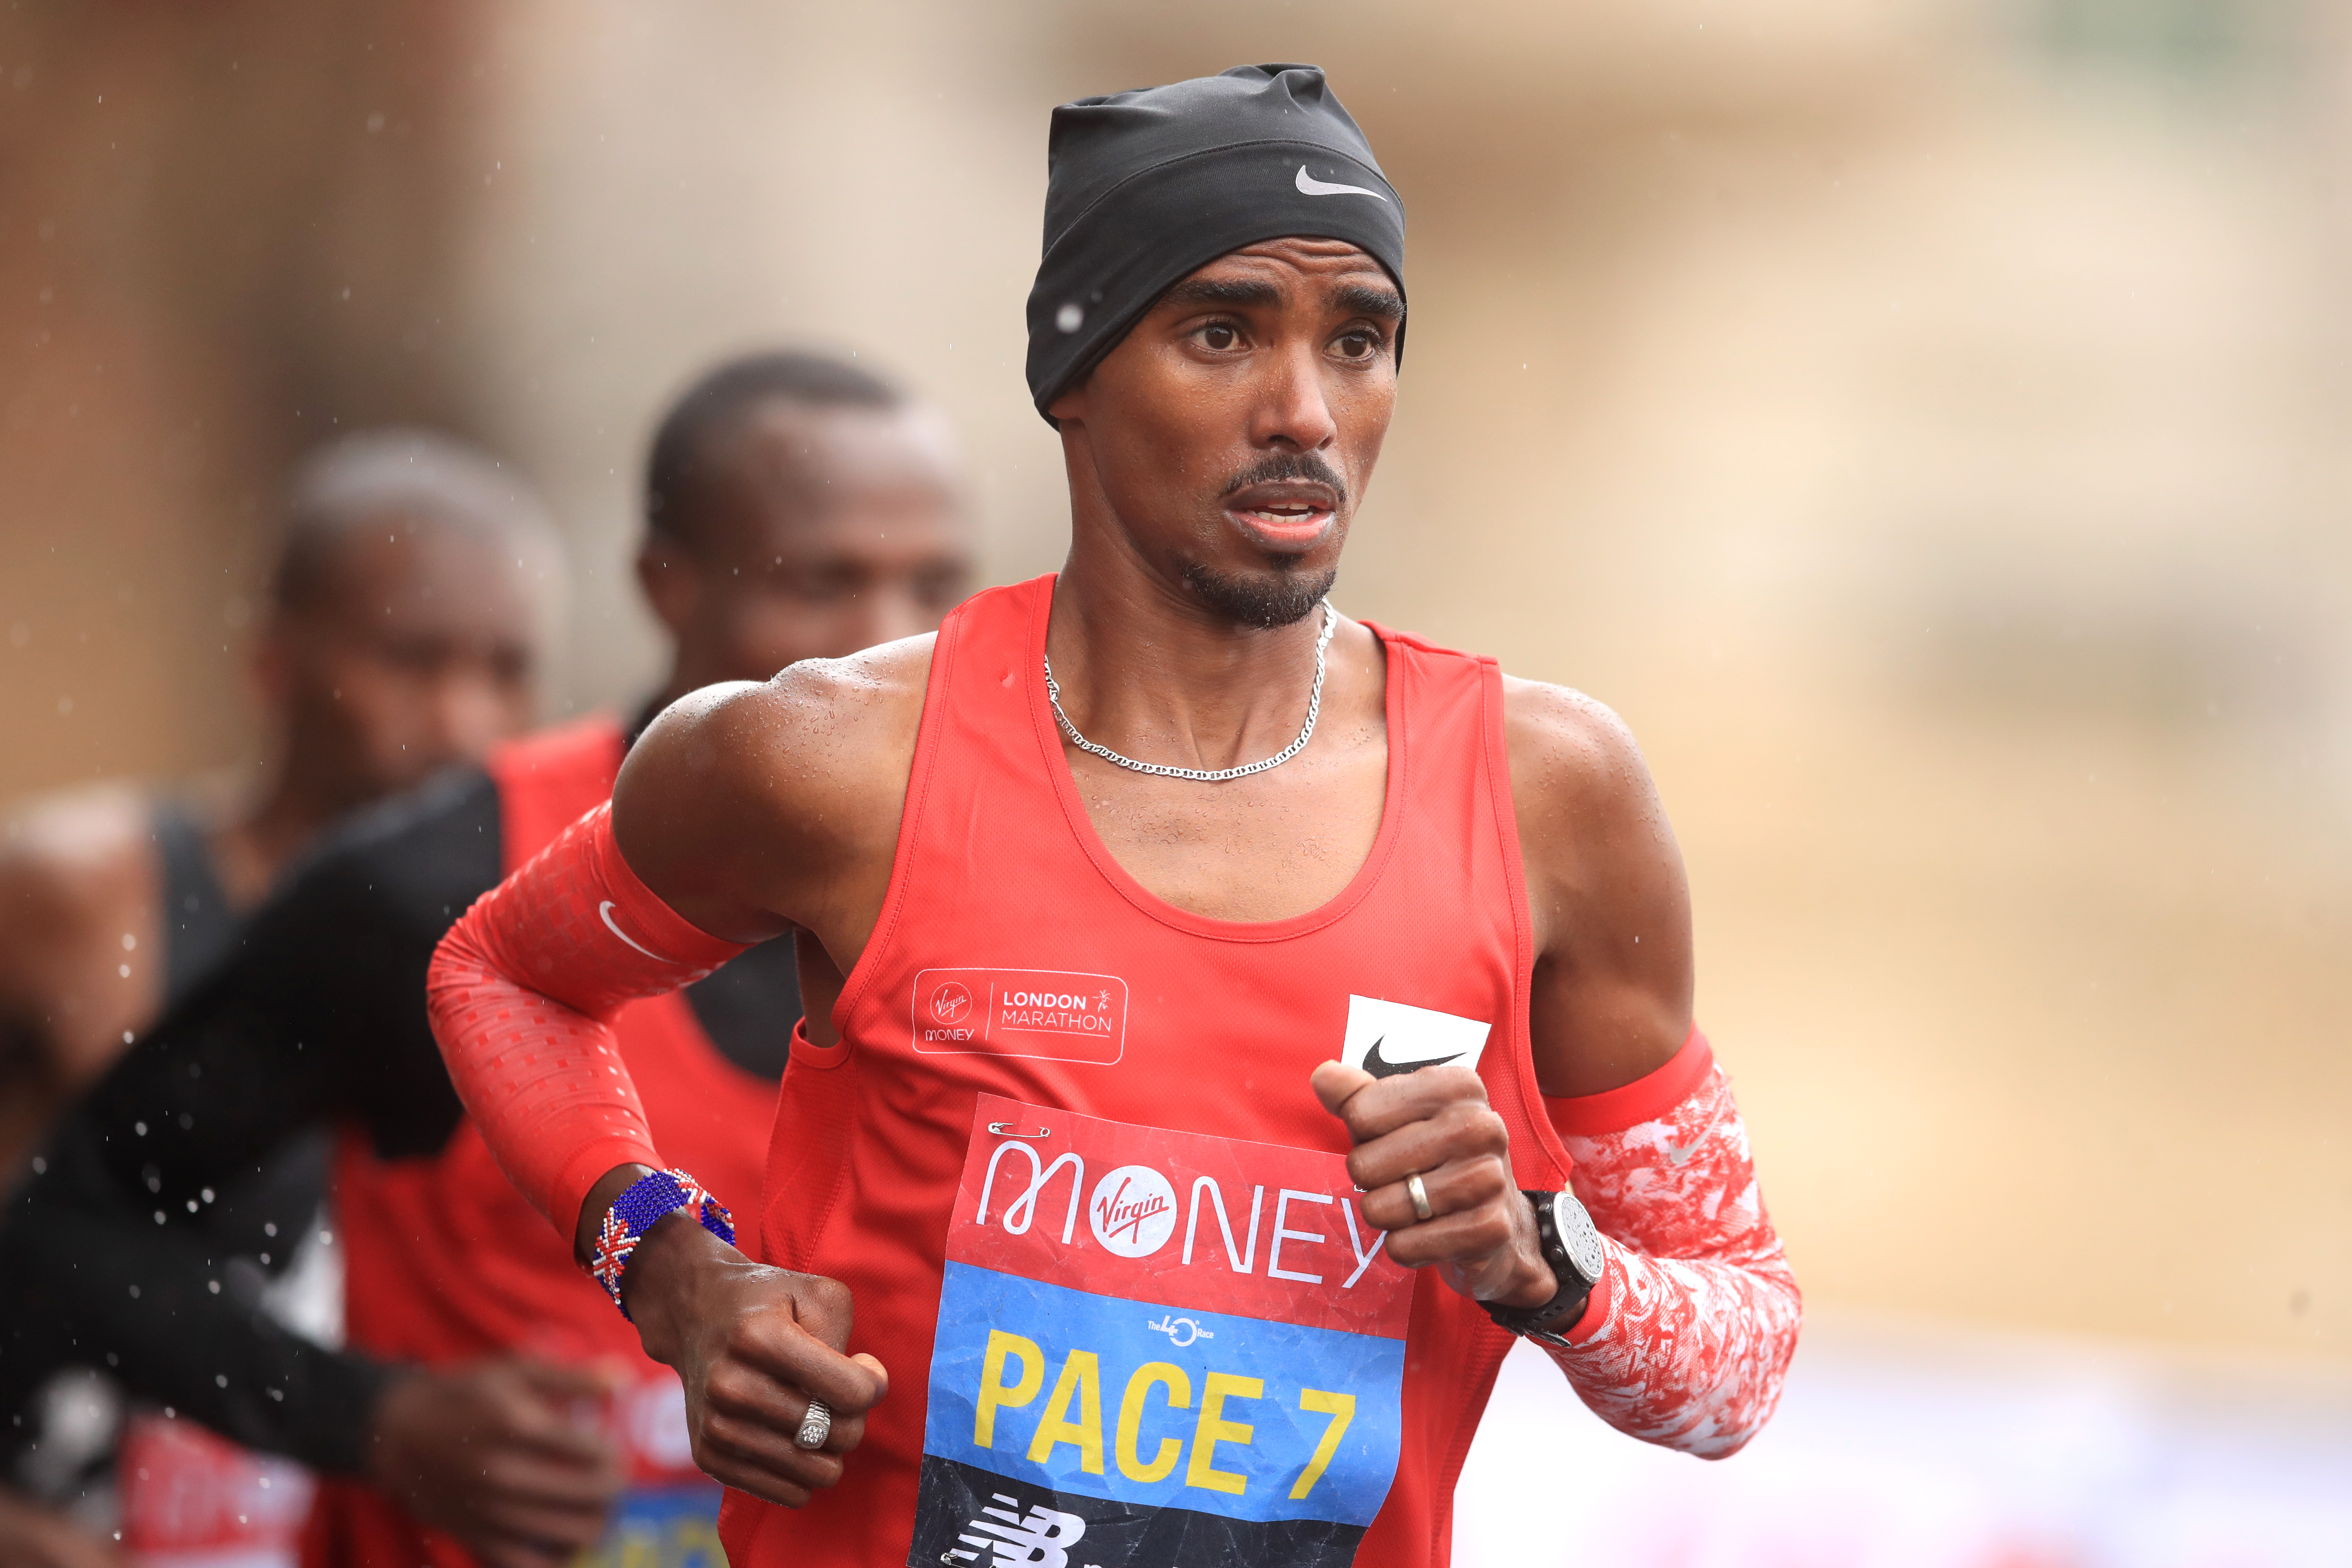 Mo Farah of Great Britain runs as a pacer during the Elite Men's race during the 2020 Virgin Money London Marathon around St. James's Park on October 04, 2020 in London, England. (Photo by Adam Davy - Pool/Getty images)